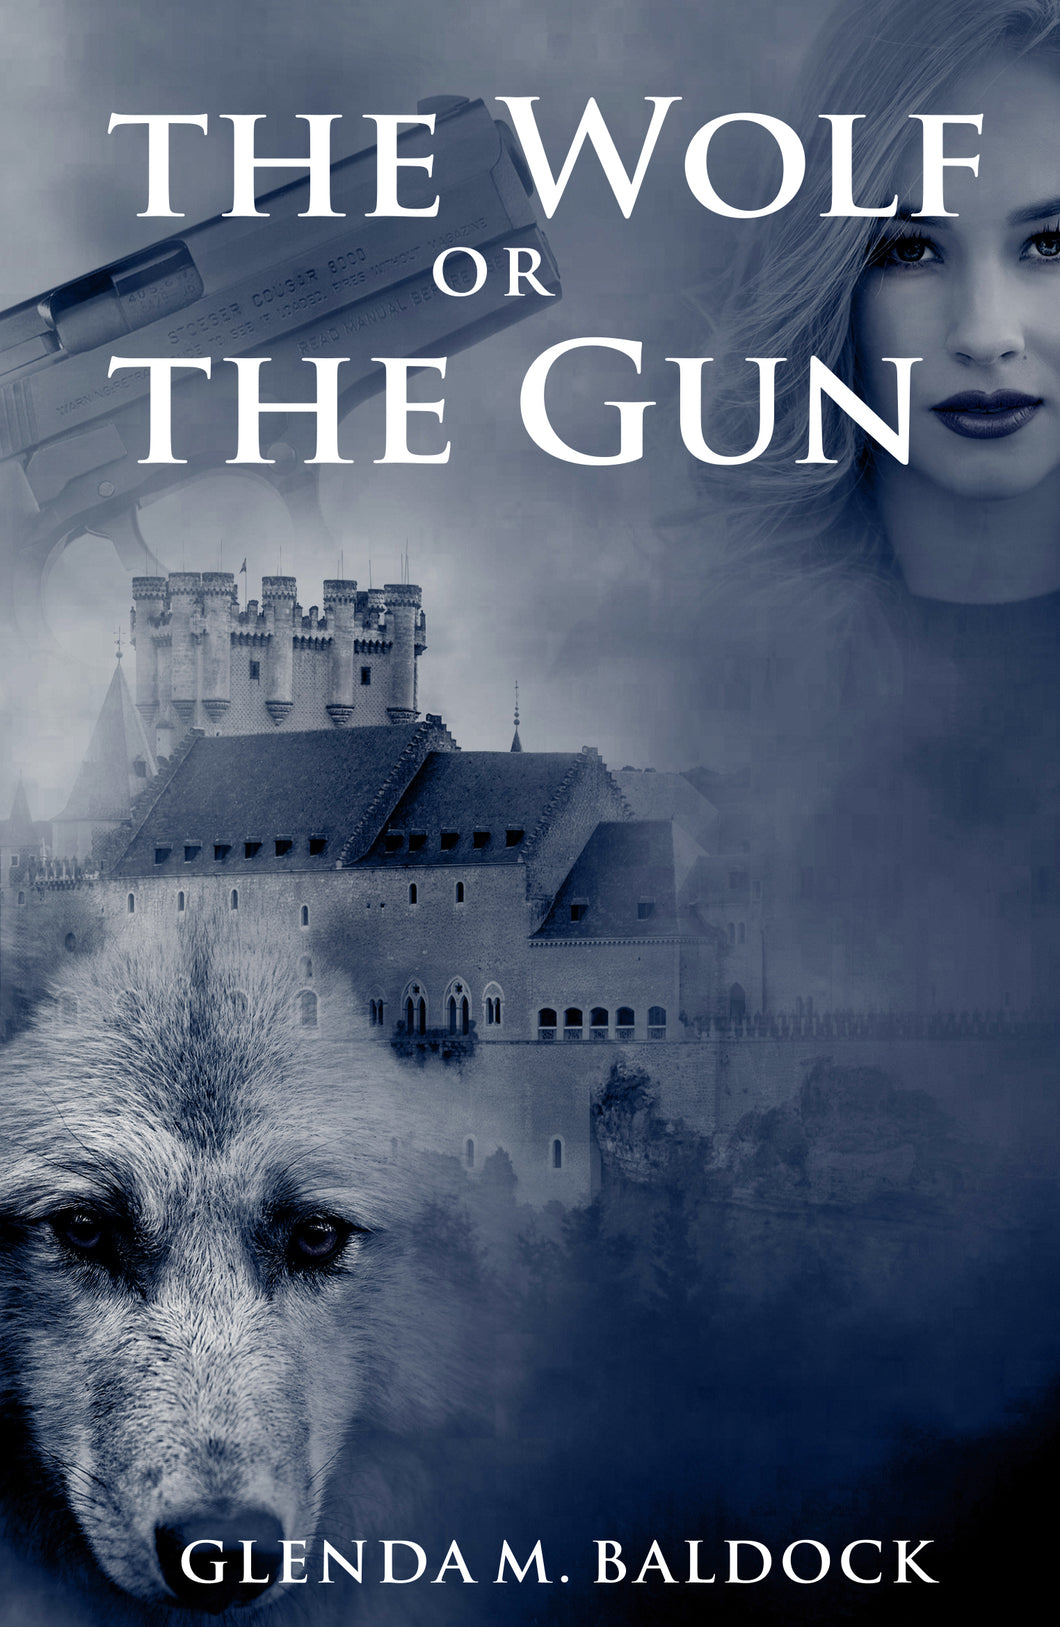 The Wolf or the Gun